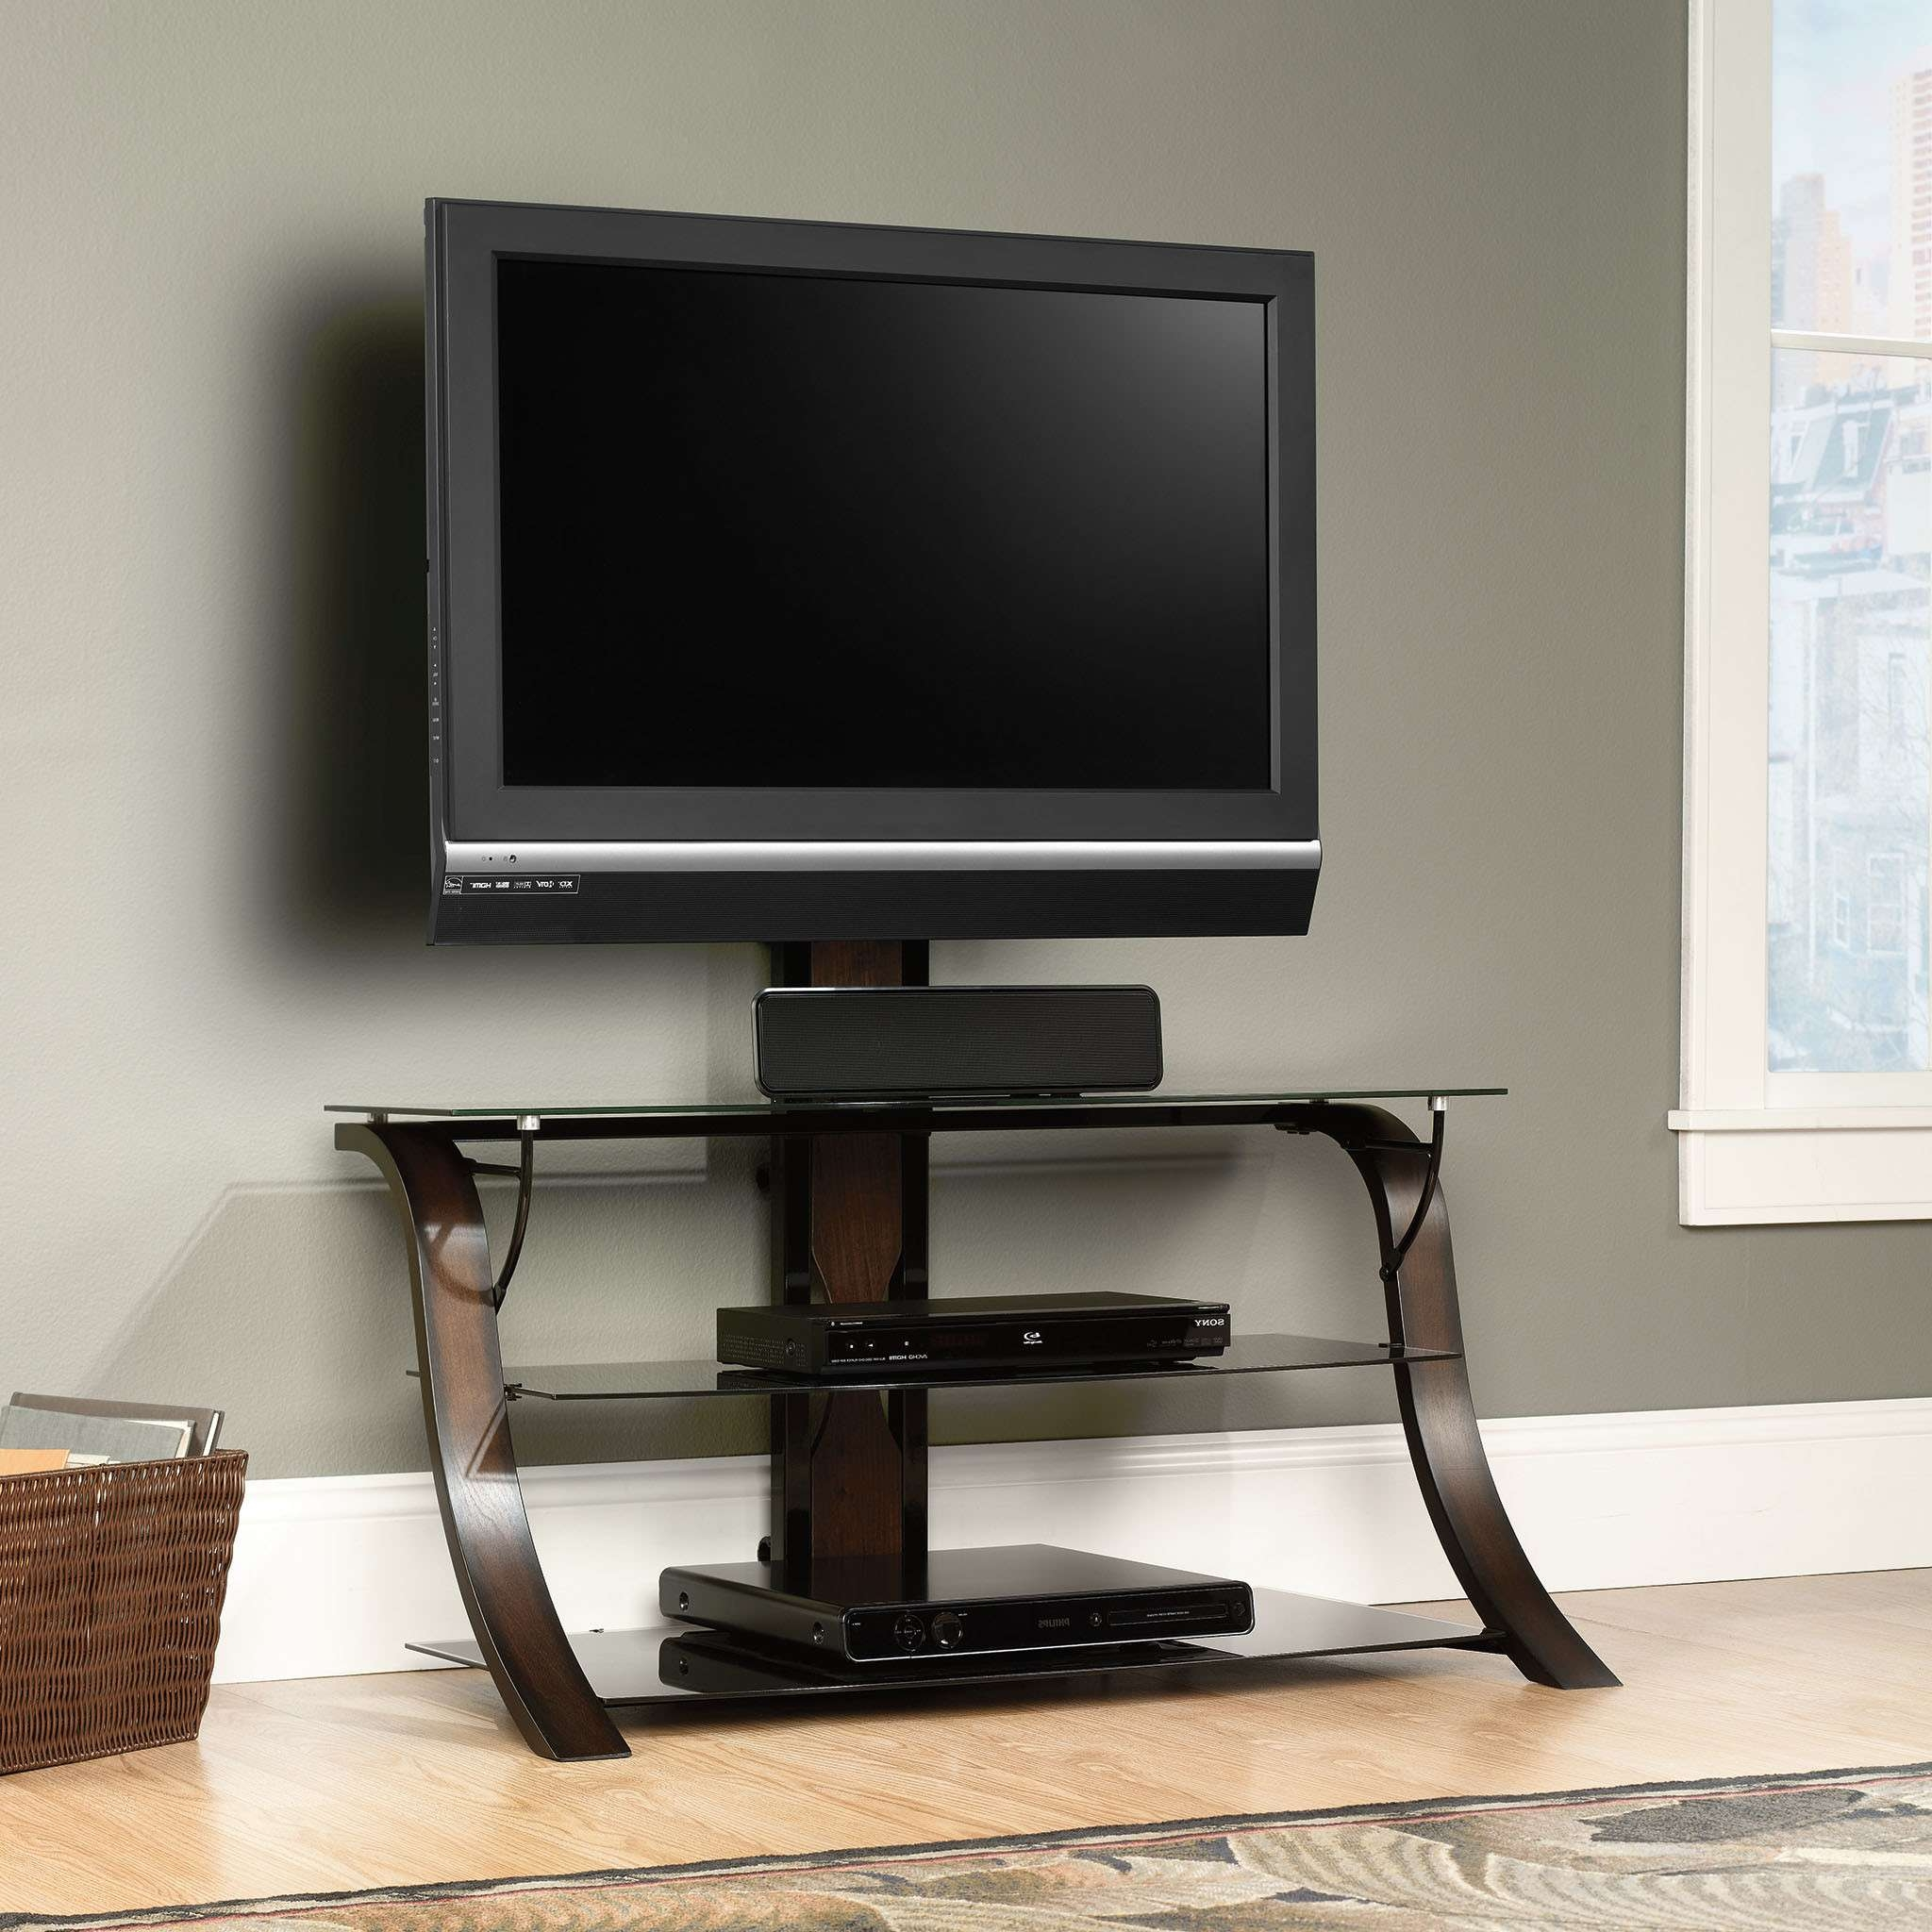 Endearing Tv Stands And Plant Curtain Together With 55 Inch Flat Pertaining To Dvd Tv Stands (View 2 of 20)